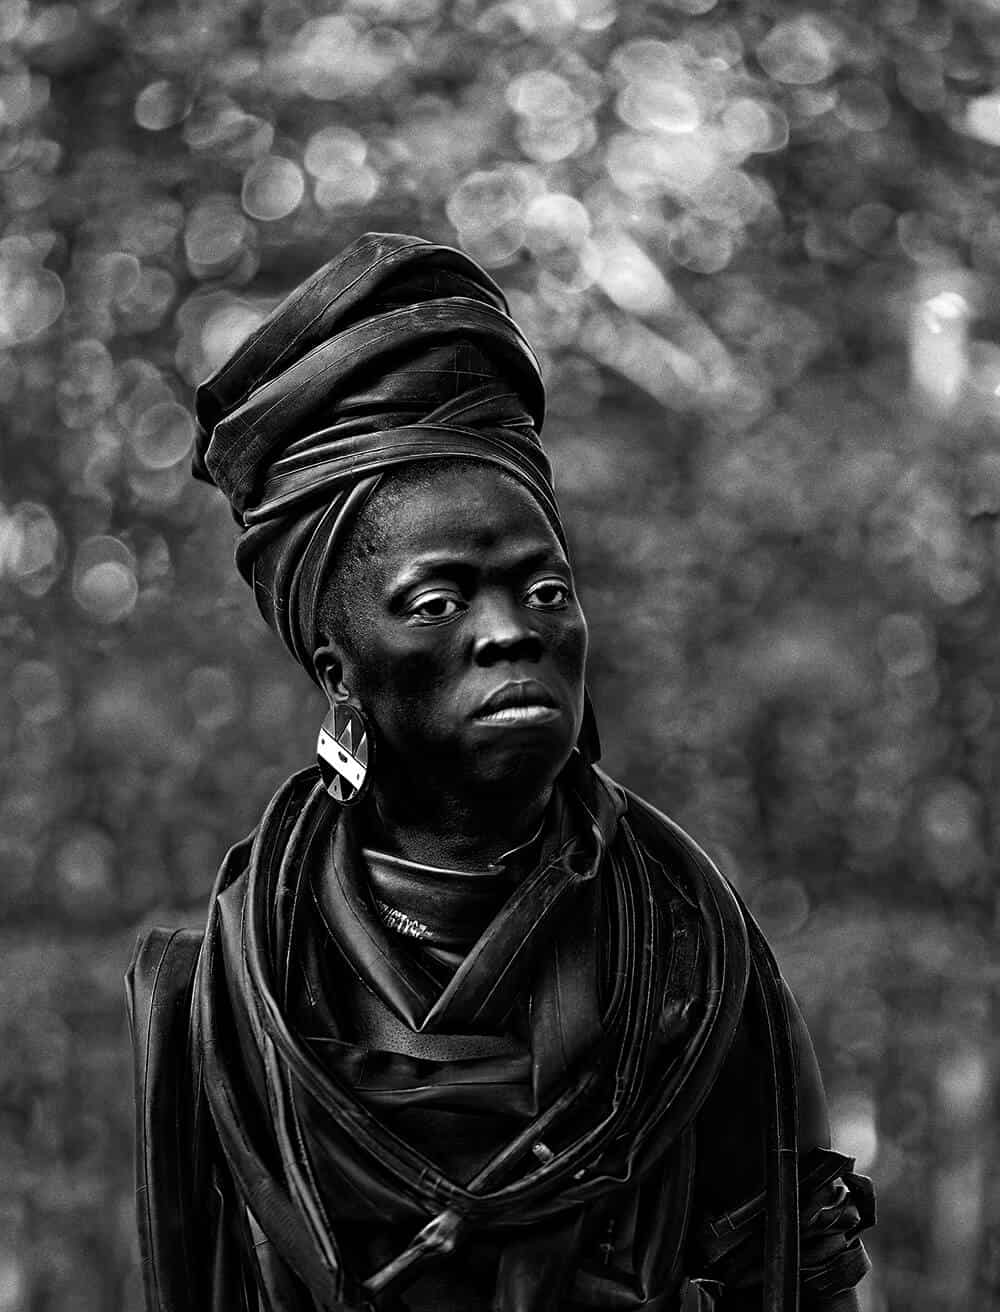 Zanele Muholi, Basizeni XI from Somnyama Ngonyama, Cassilhaus, North Carolina, 2016. © Zanele Muholi. Courtesy of the artist.